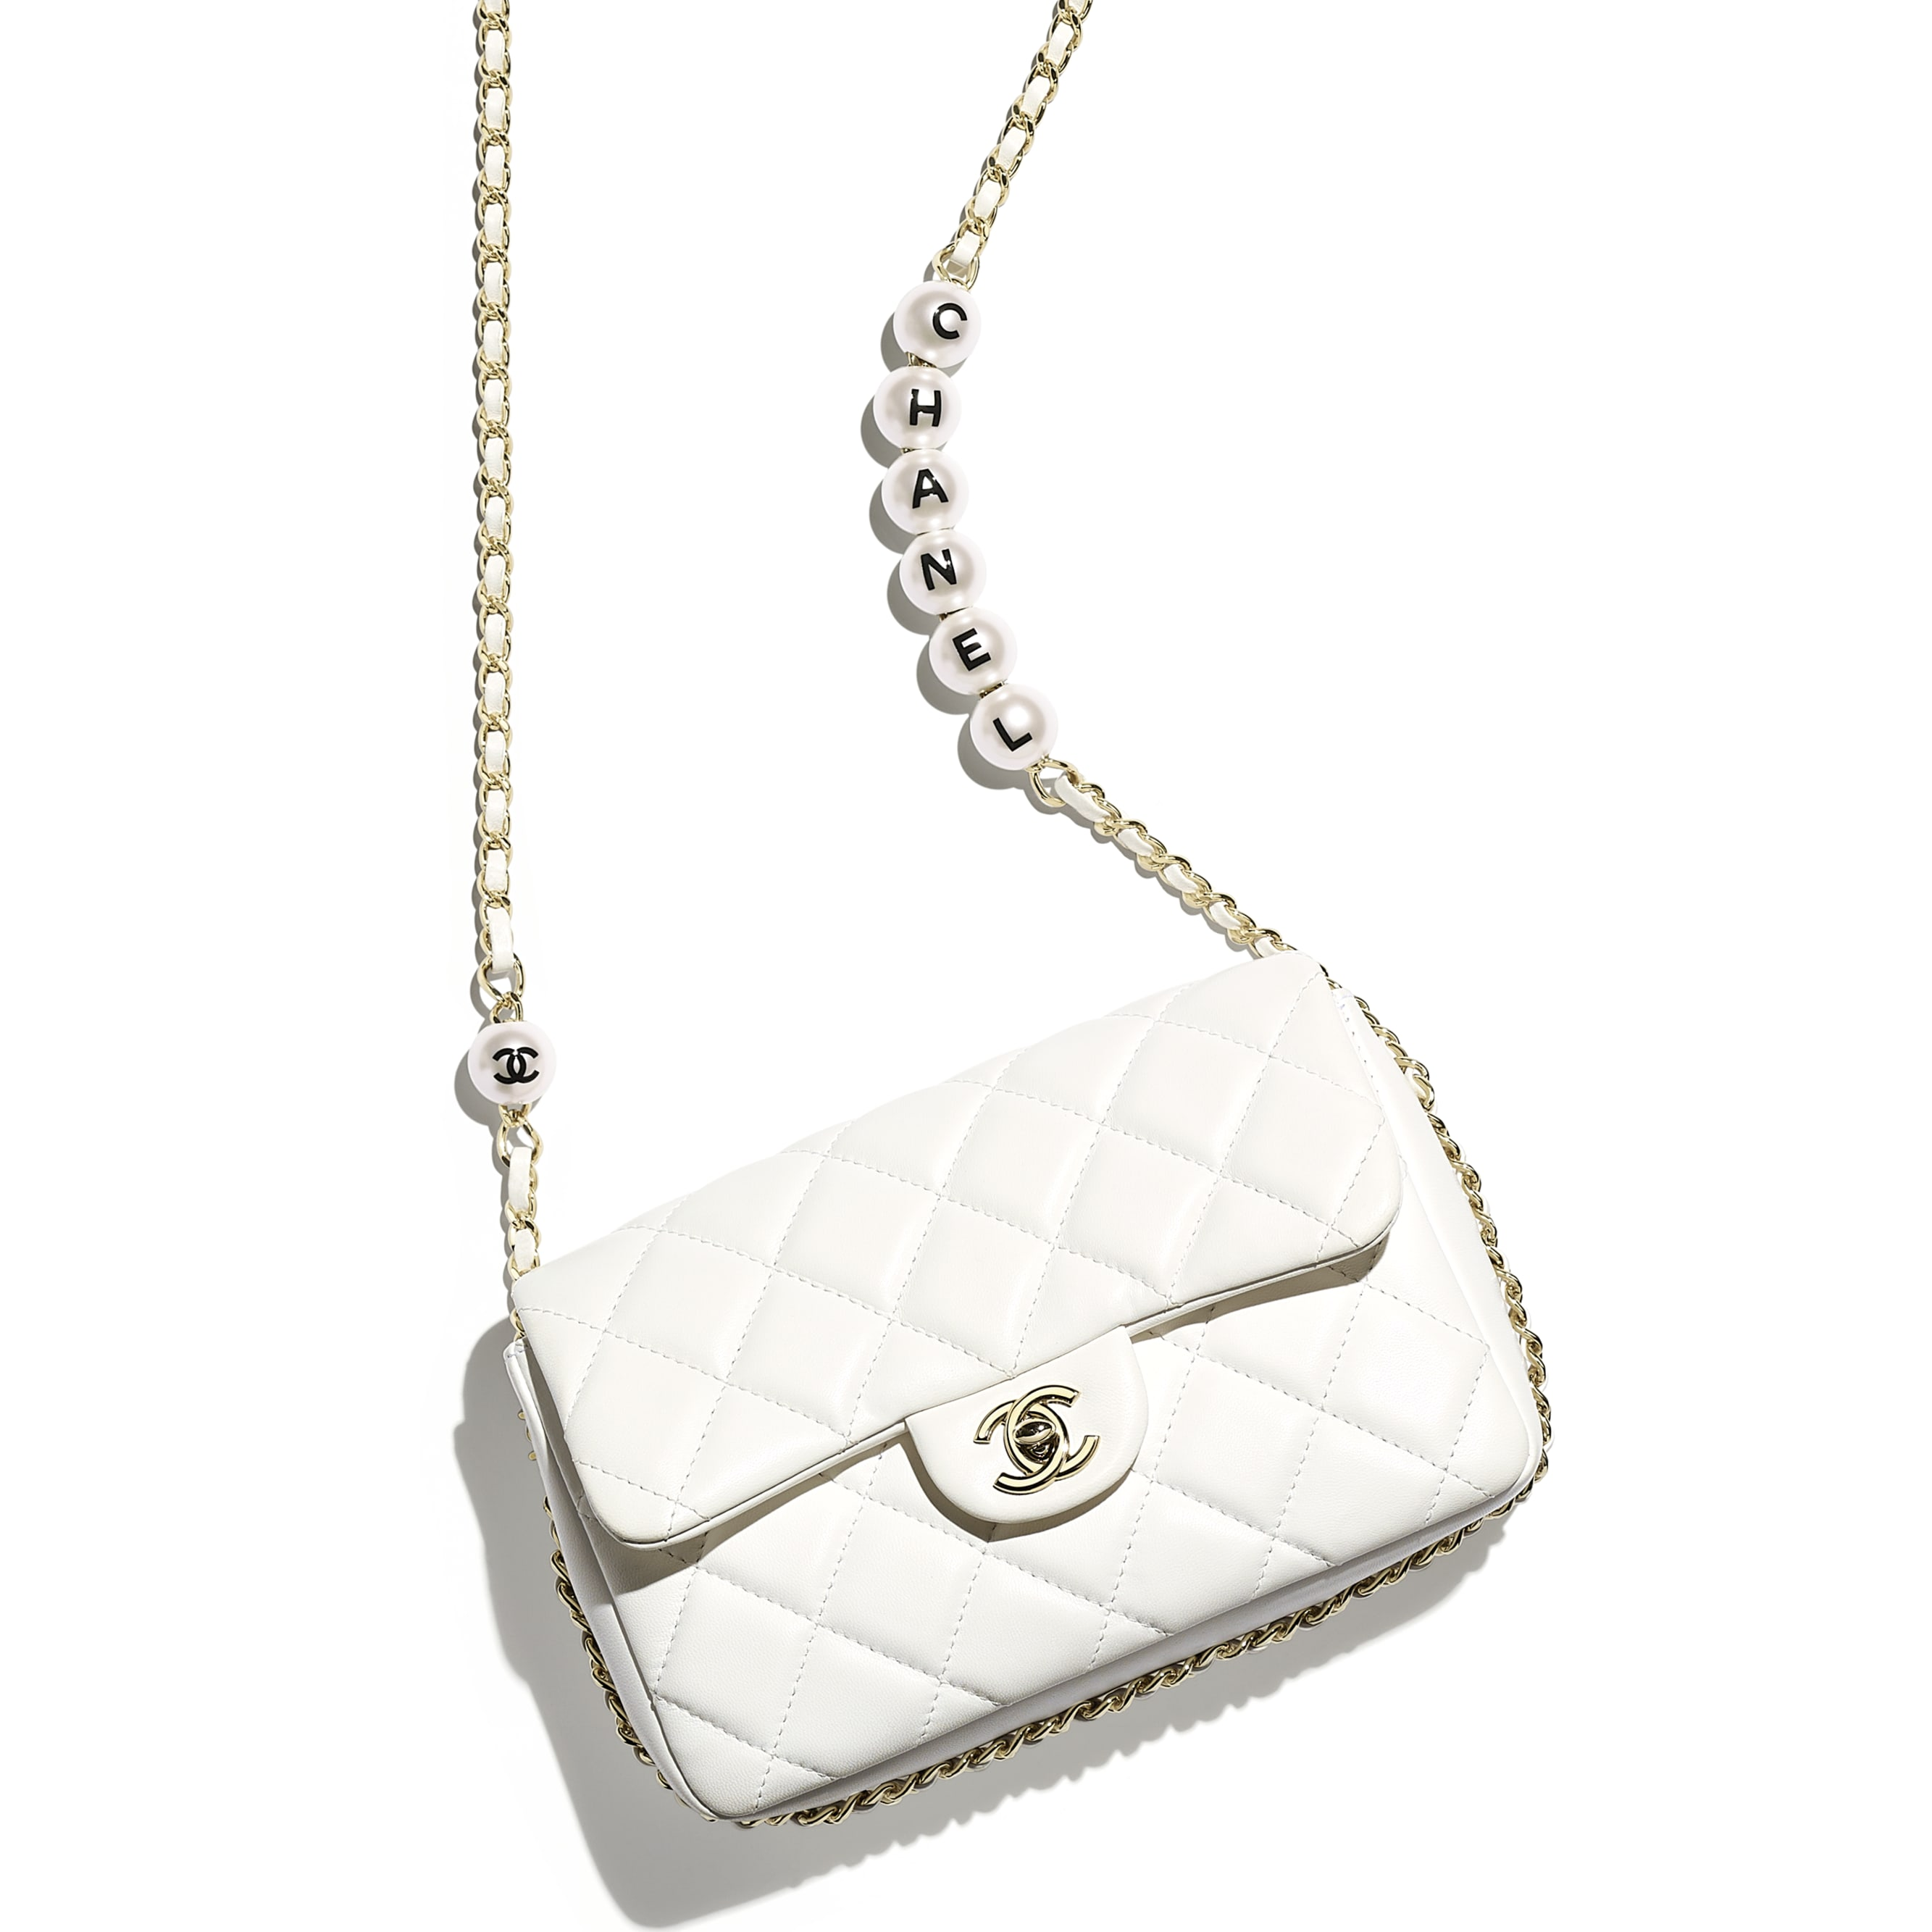 Flap Bag - White - Lambskin, Imitation Pearls & Gold Metal - Extra view - see standard sized version